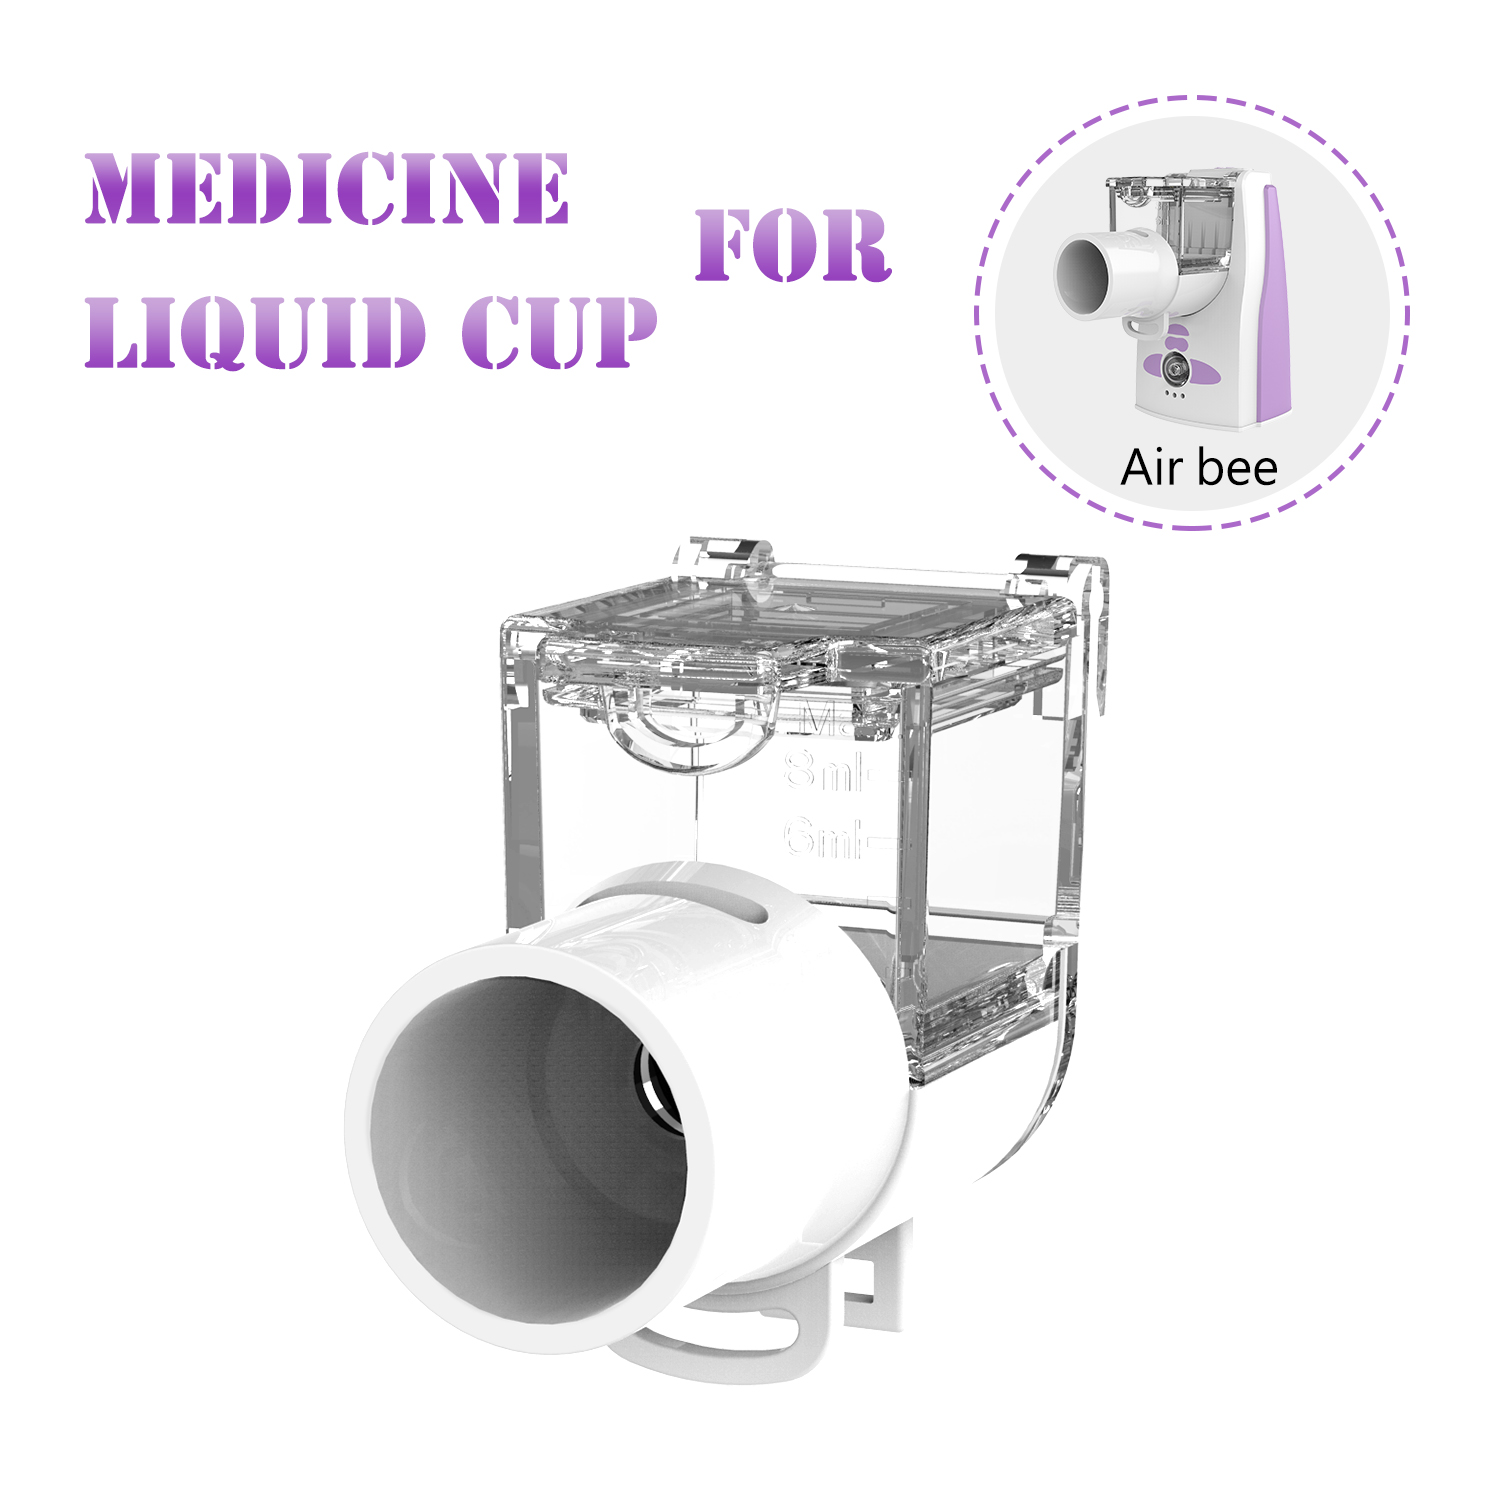 Portable Mesh Nebulizer Air Bee Liquid Cup Medication Cup